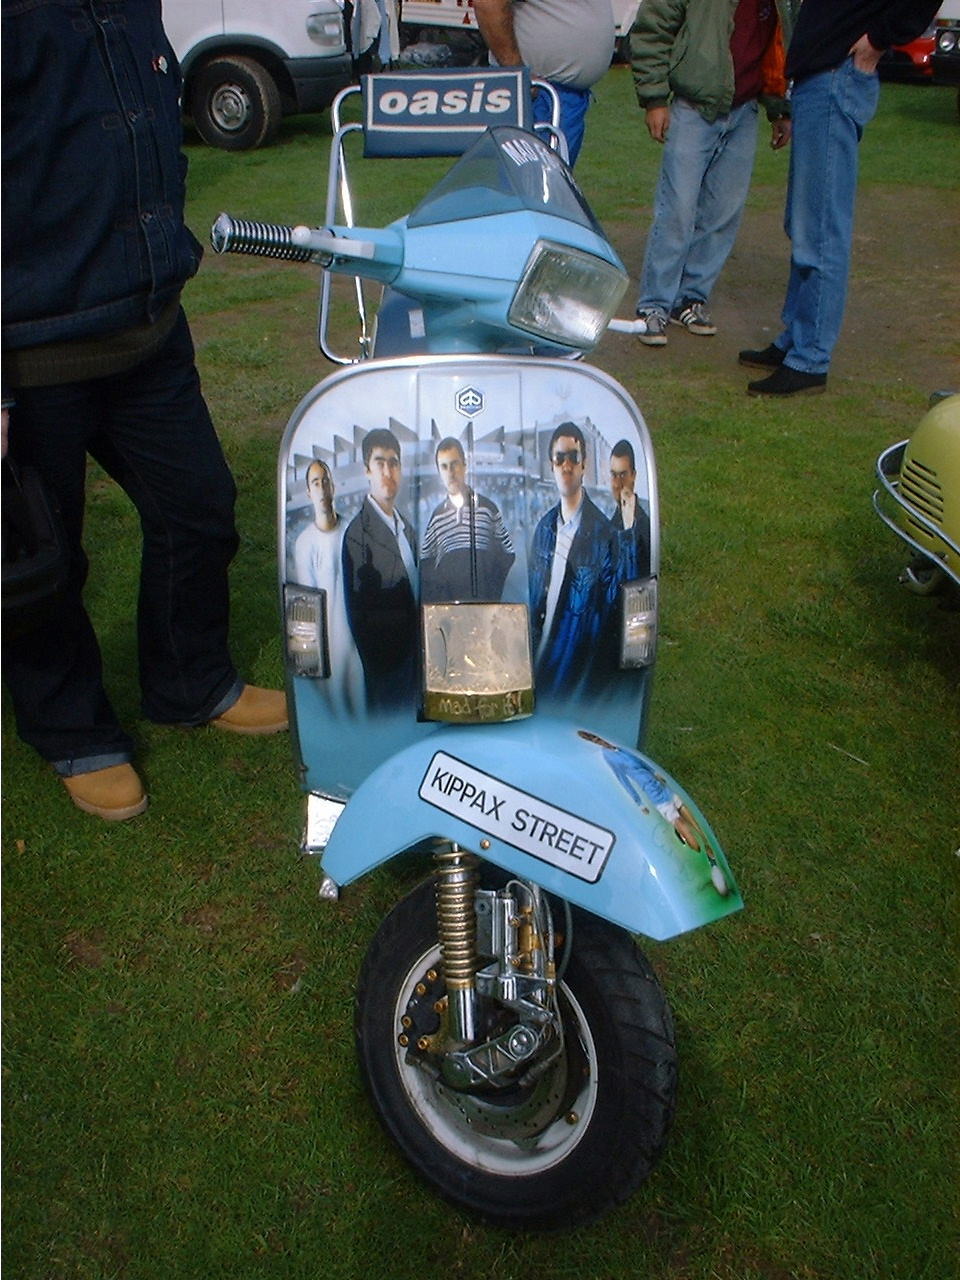 Oasis and Manchester City themed custom Vespa